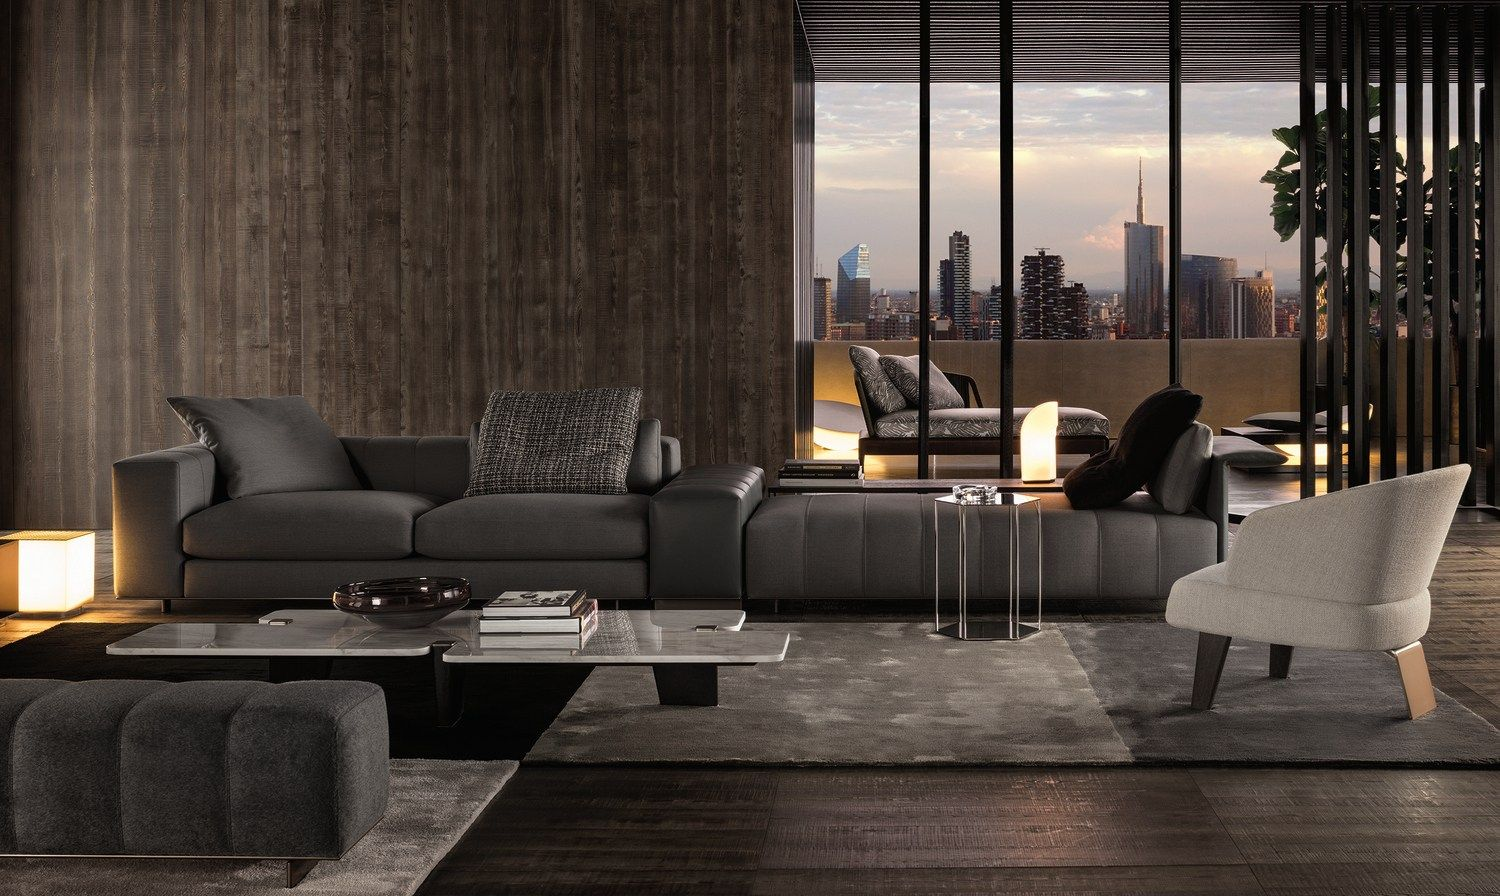 Sofa Freeman Seating System By Minotti Diseno Rodolfo Dordoni